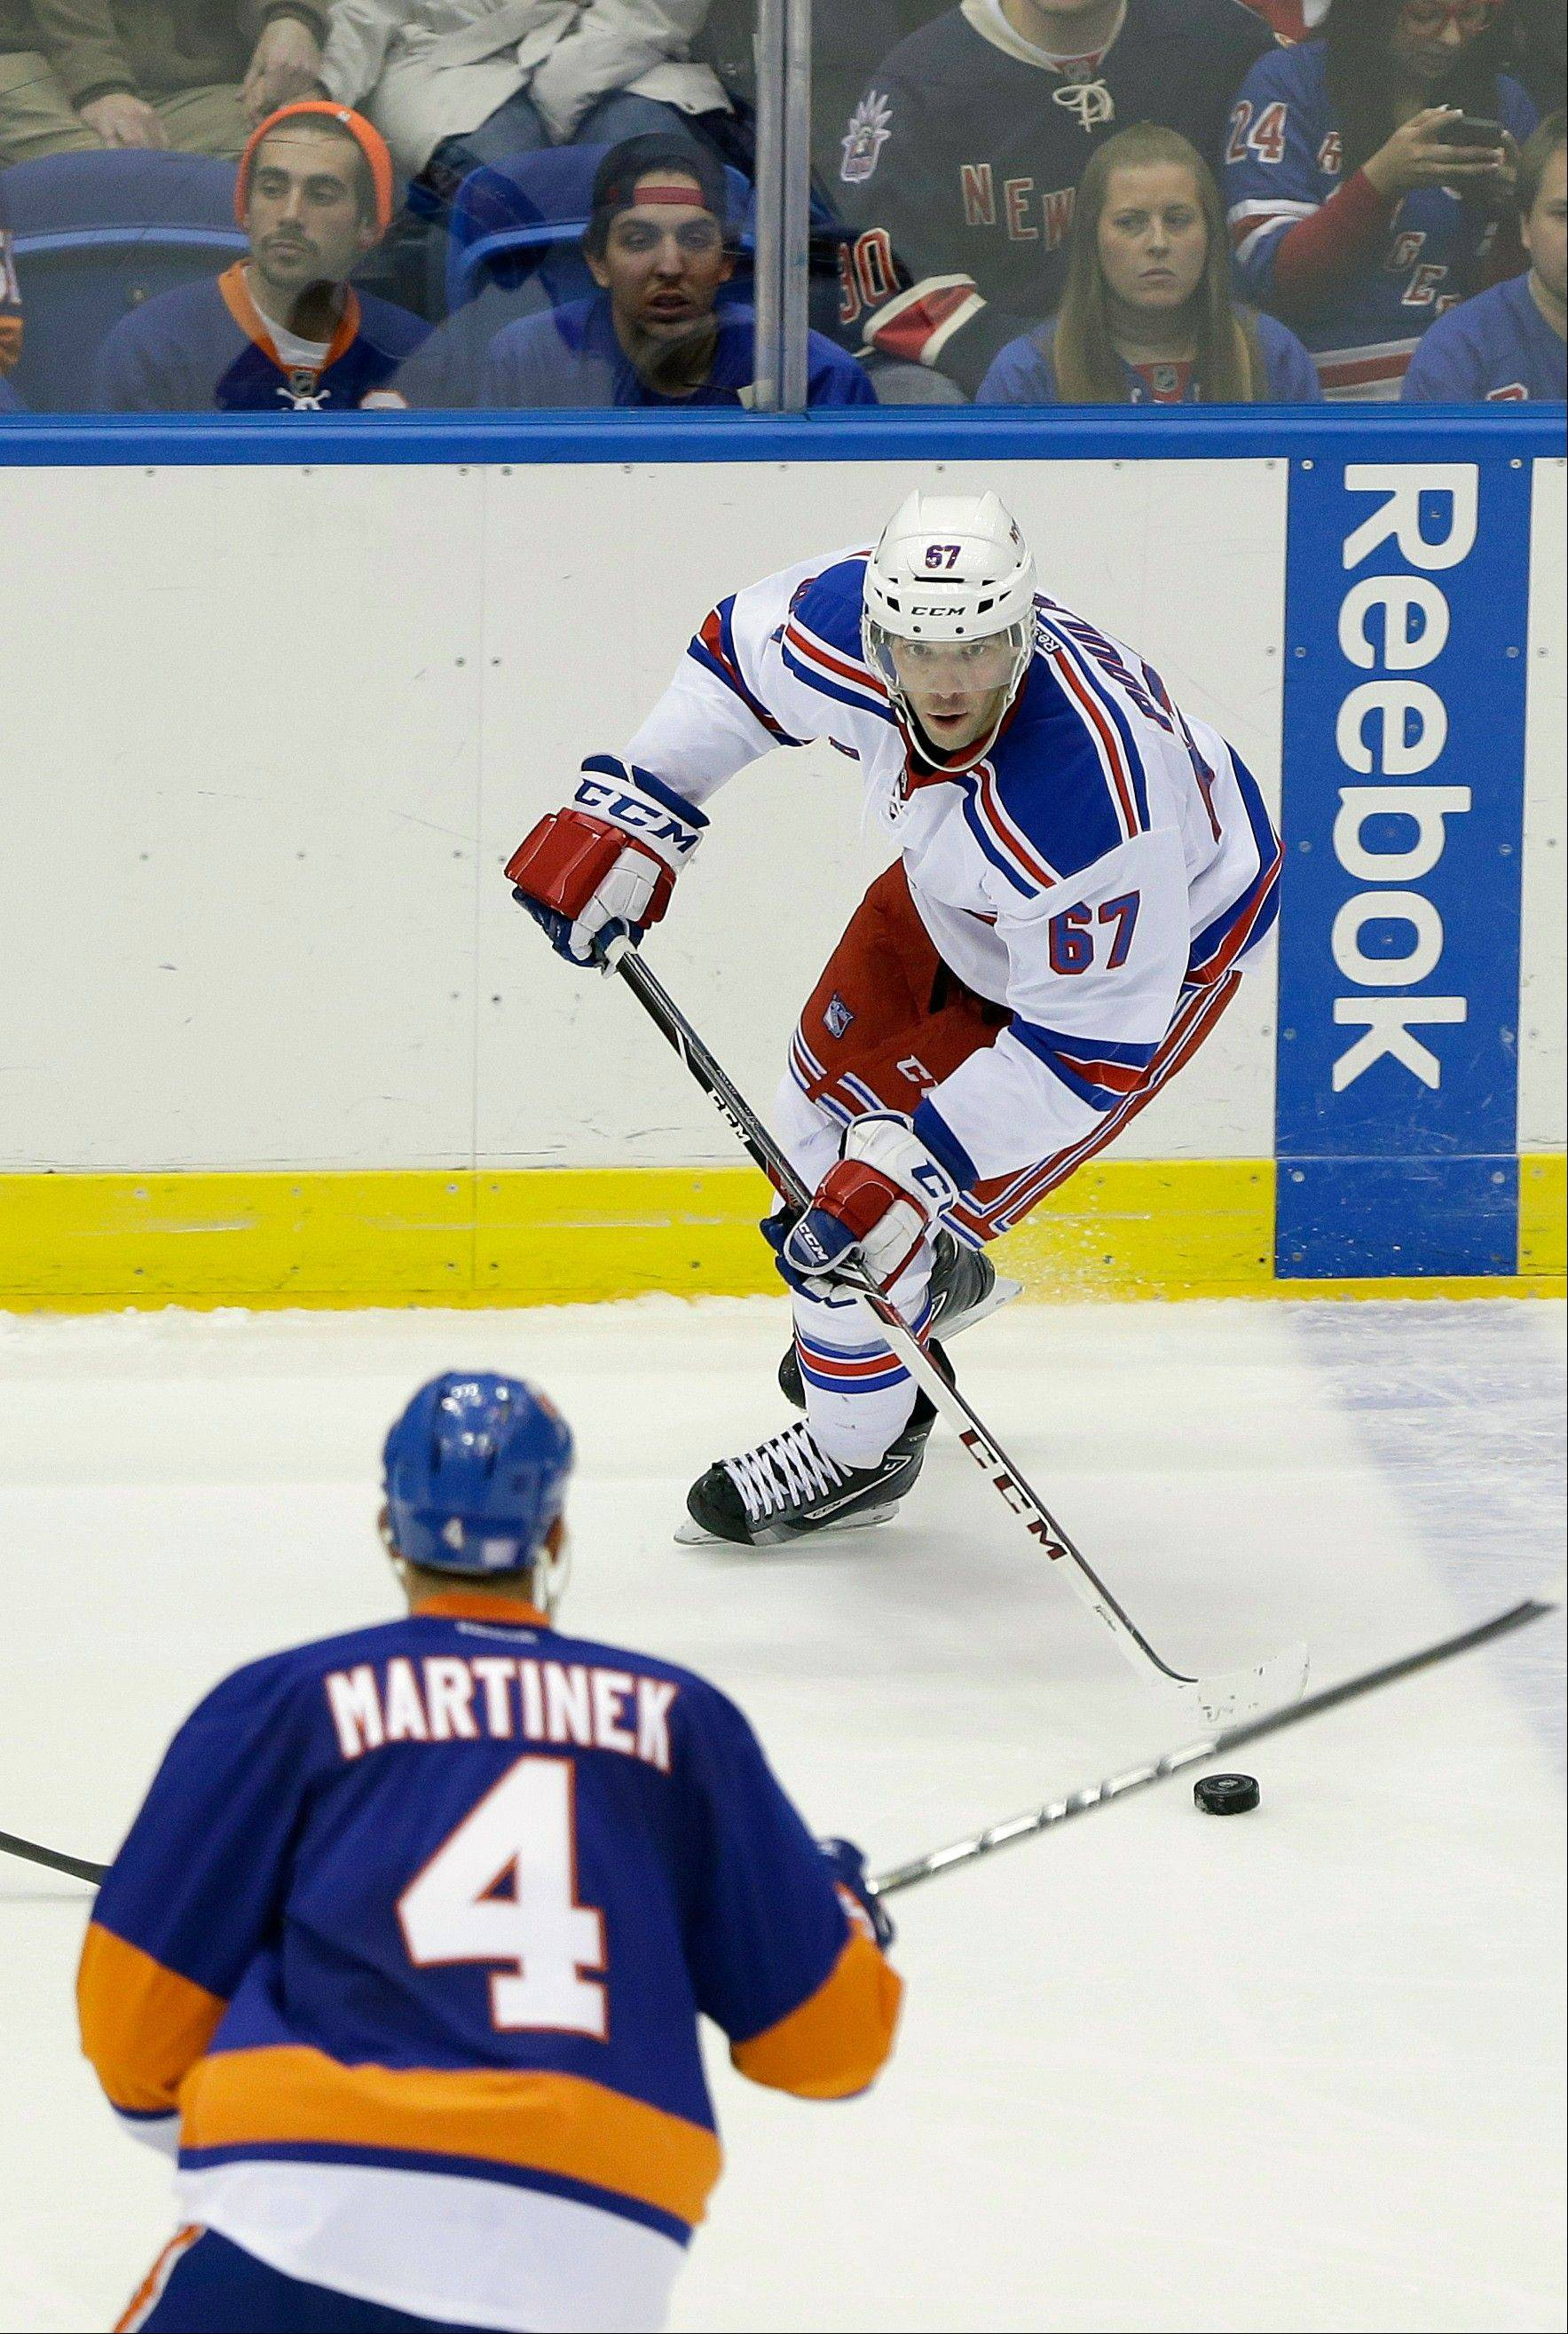 New York Rangers� Benoit Pouliot (67) looks to pass away as New York Islanders� Radek Martinek (4) skates in during the third period of an NHL hockey game Tuesday, in Uniondale, N.Y. The Rangers won the game 3-2.